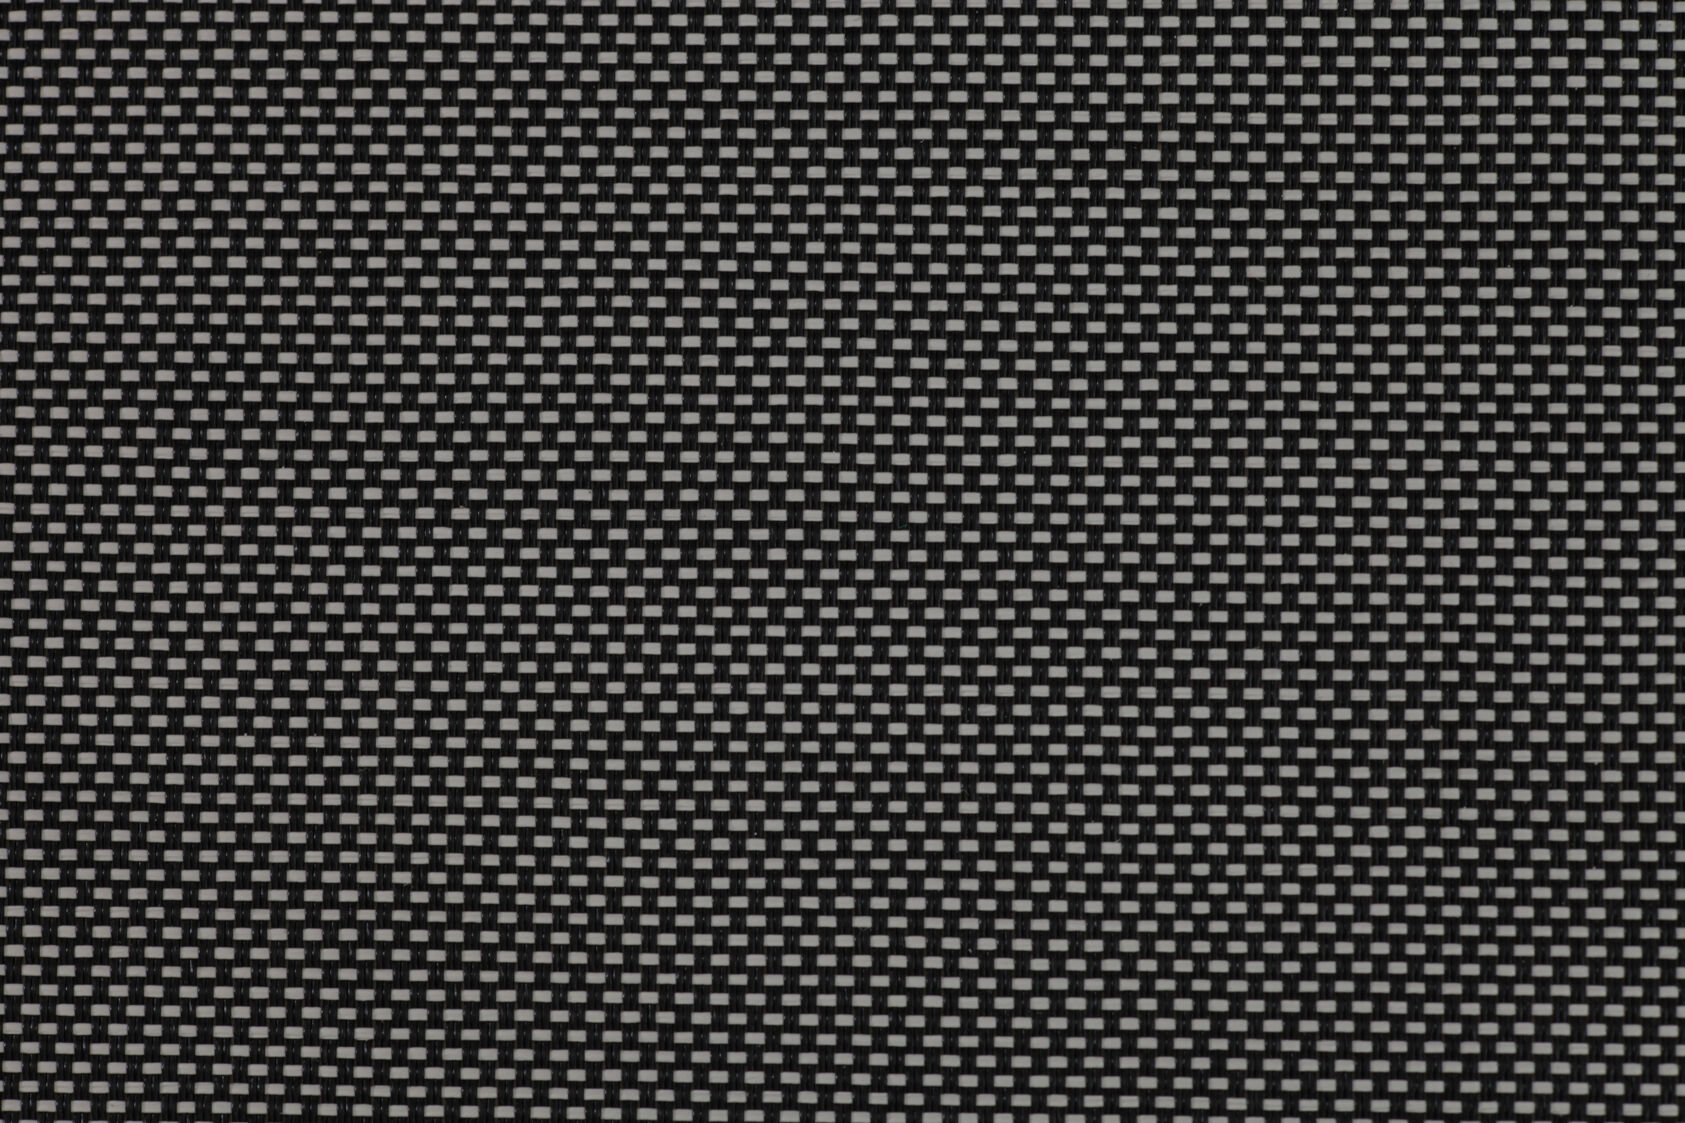 DuoScreen_Charcoal_Slate_Medium